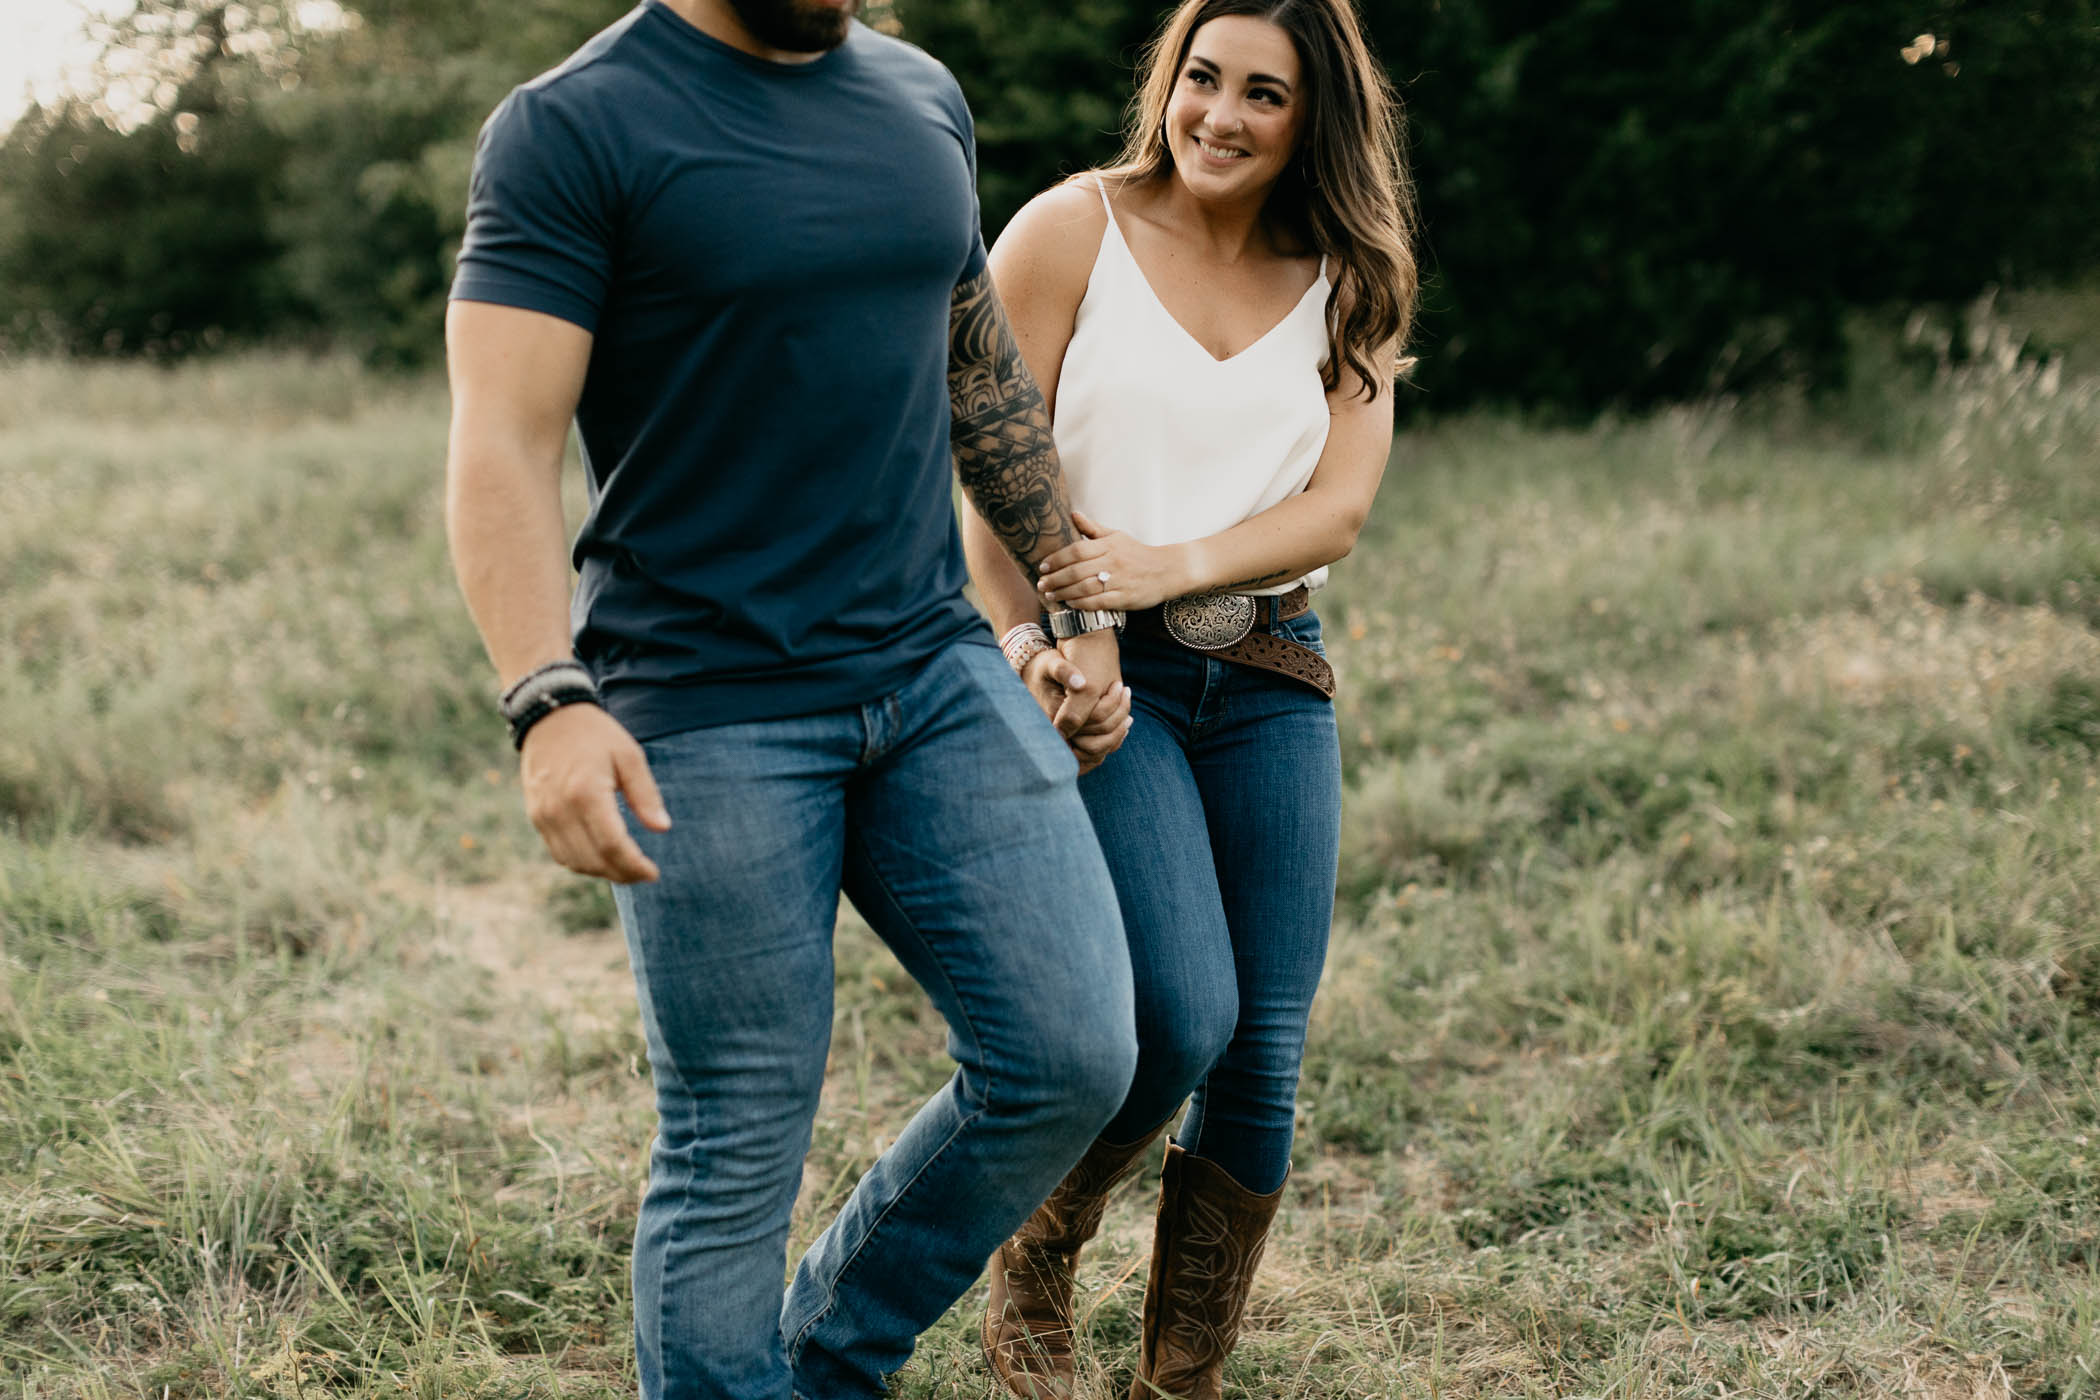 Detail photo of couple walking through field during romantic engagement photos